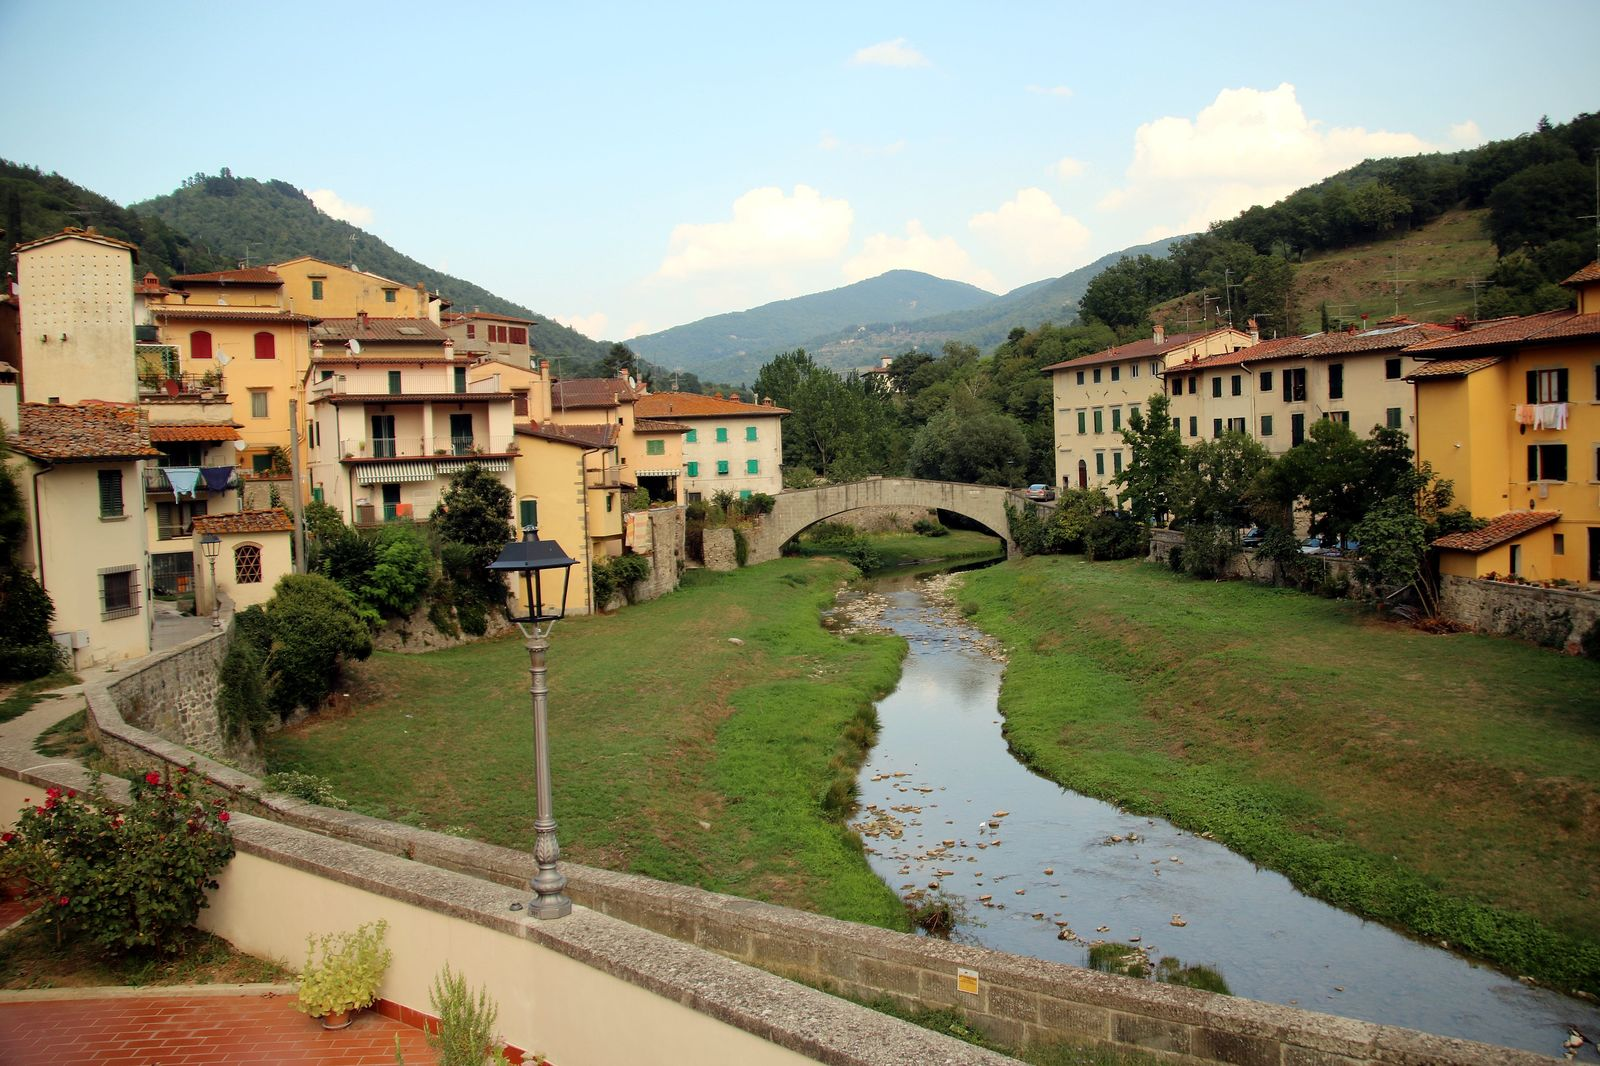 Dicomano - Between the Mugello and the Val di Sieve